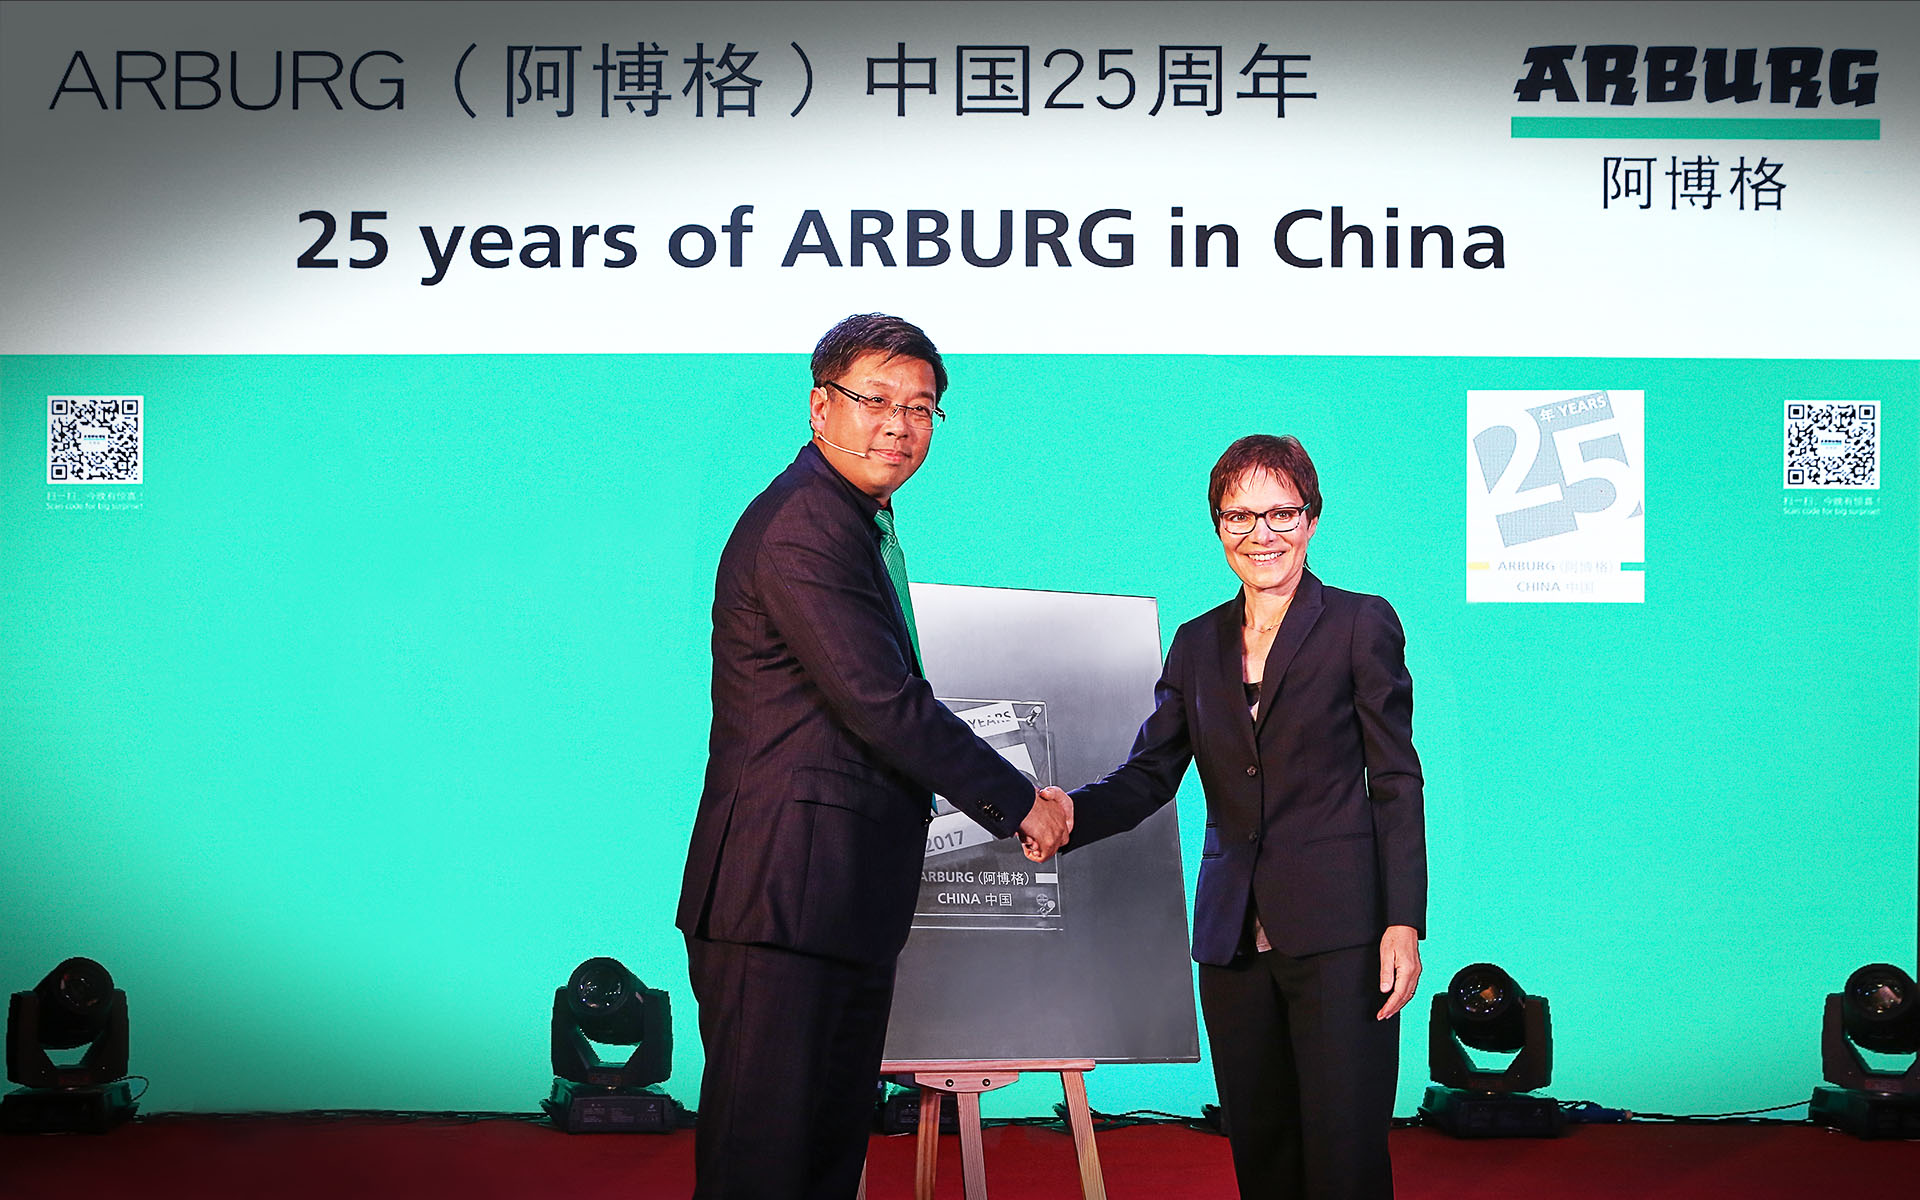 25 years of ARBURG in China